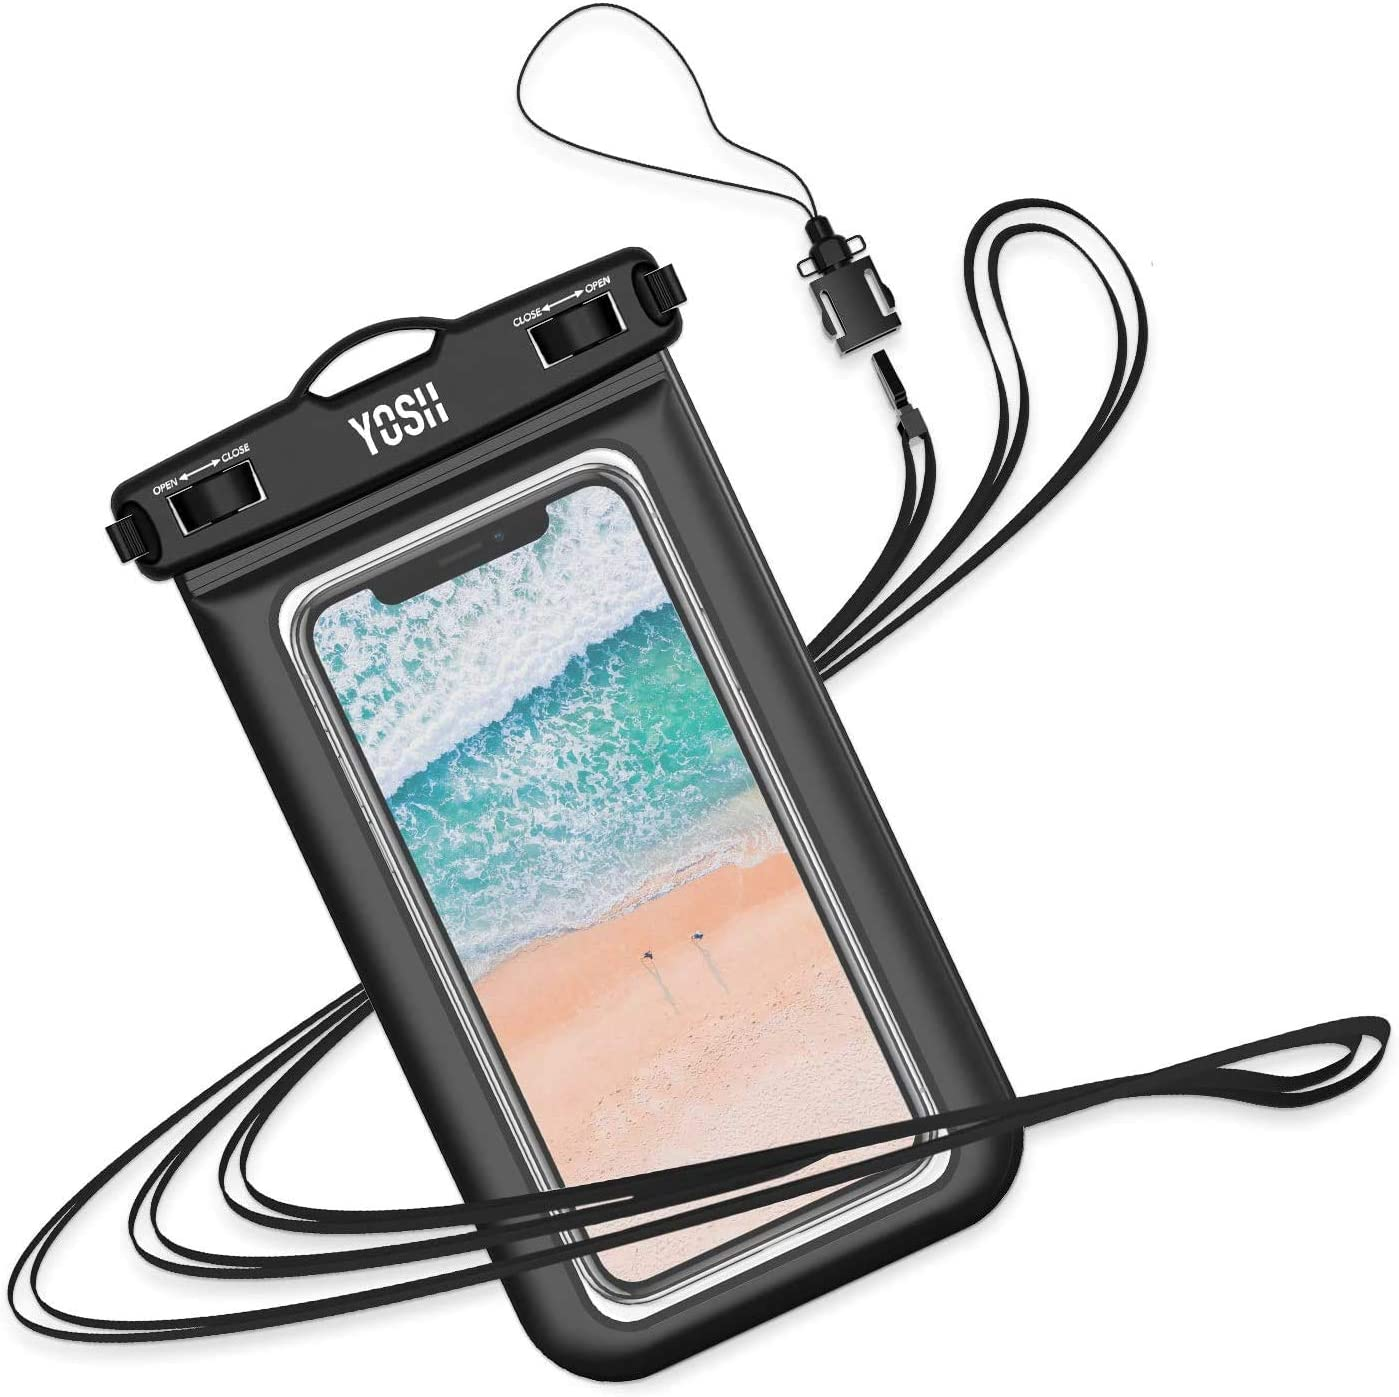 """YOSH Waterproof Phone Pouch Waterproof Case Cell phone Dry Bag Underwater Pouch Compatible with iPhone 11/X/8 Galaxy S10/S9 Google Pixel 4 up to 6.8"""""""